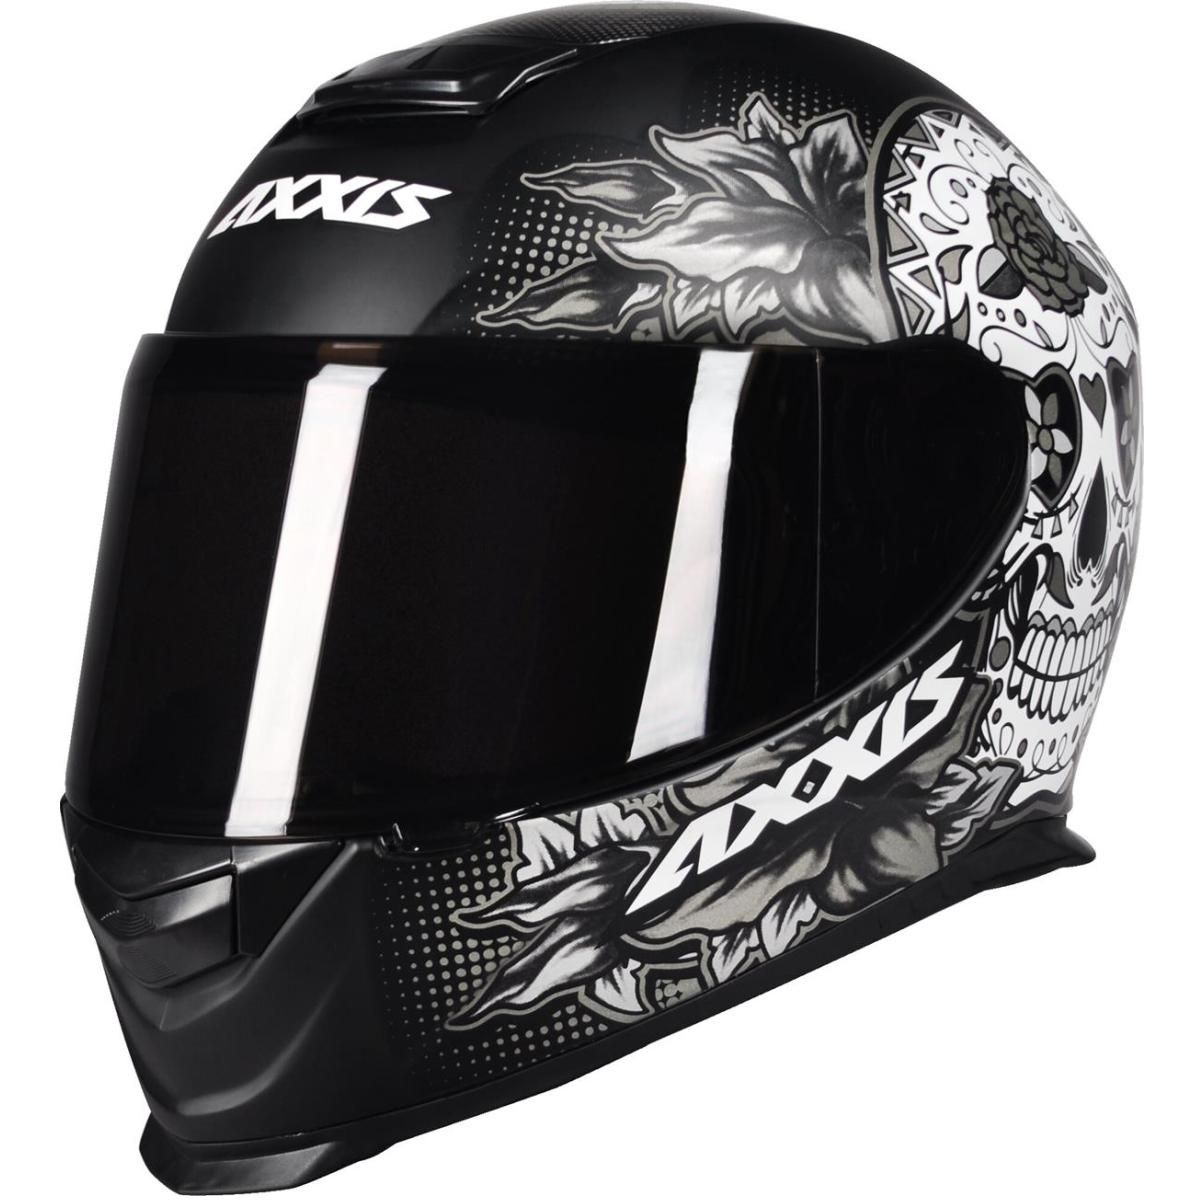 CAPACETE AXXIS EAGLE SKULL MATT BLACK/GREY